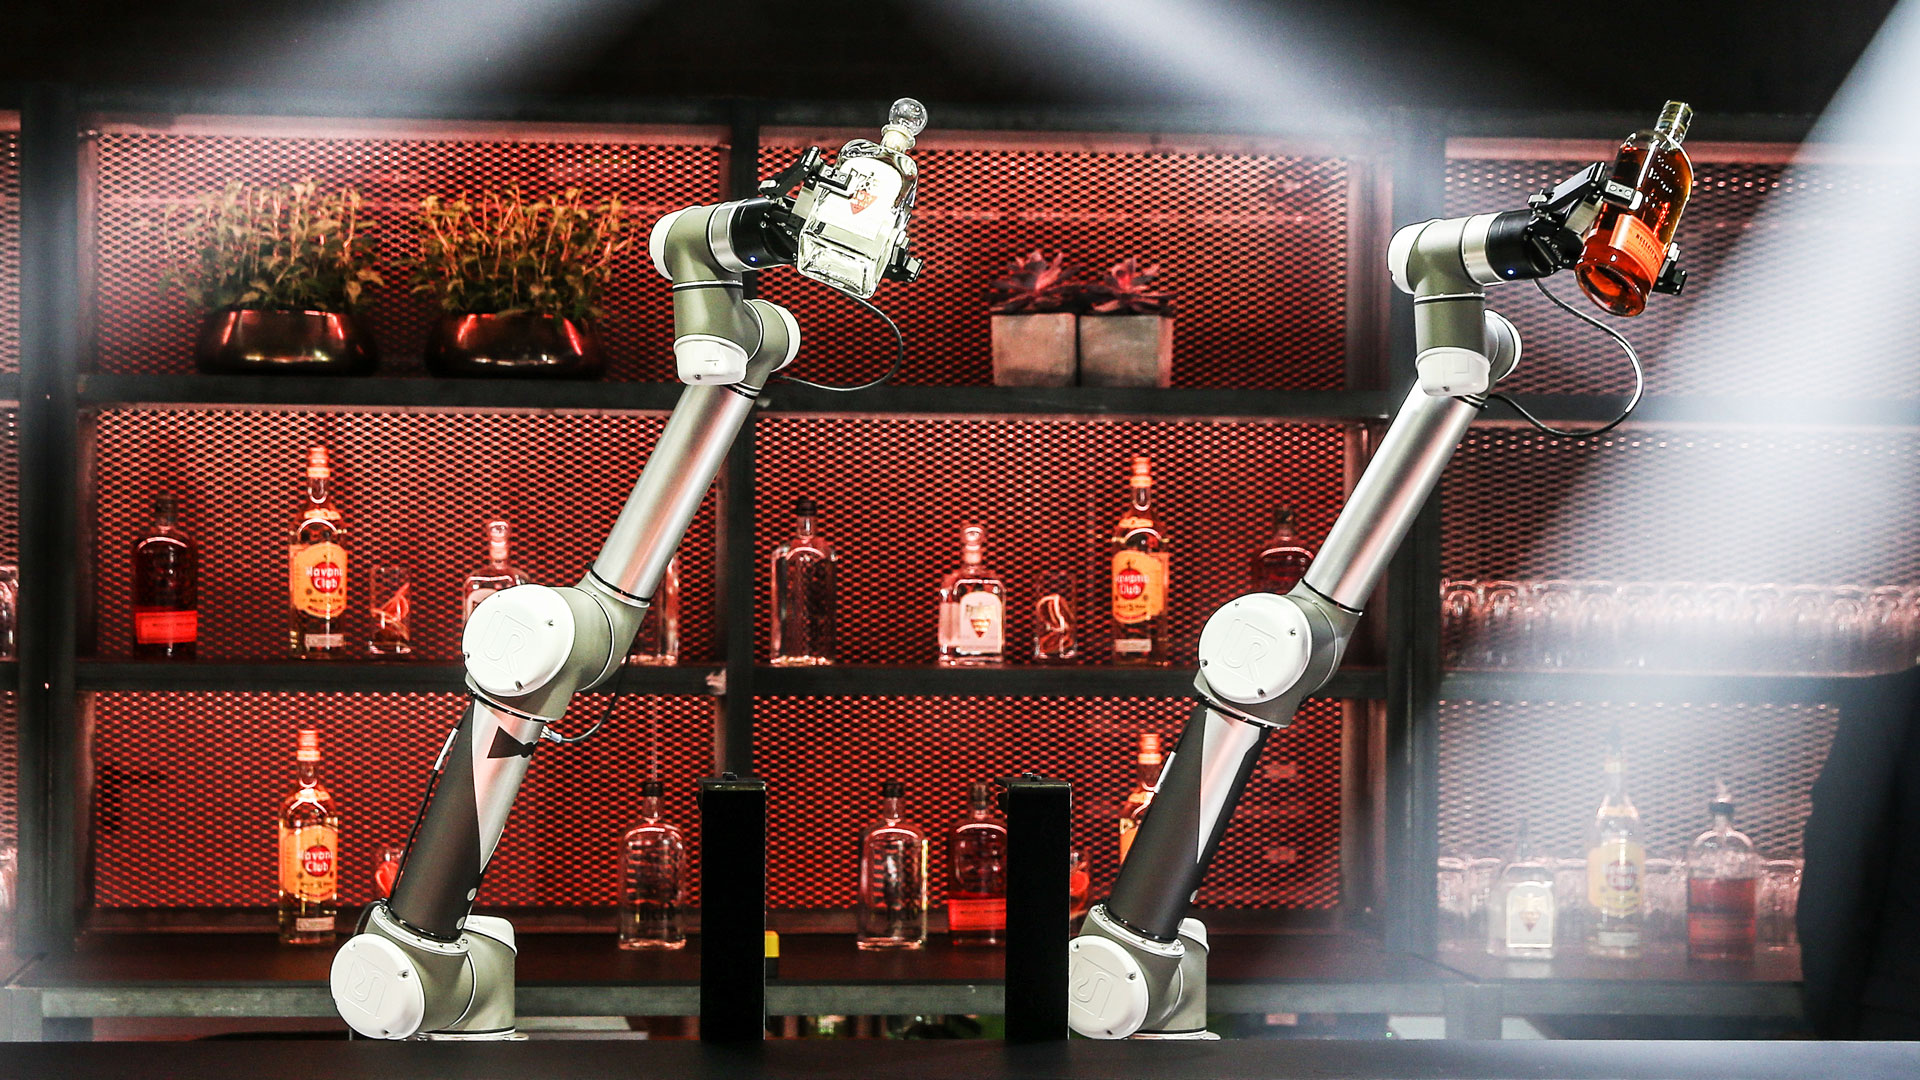 Two industrial robots take over the barkeeper function and mix the cocktails.